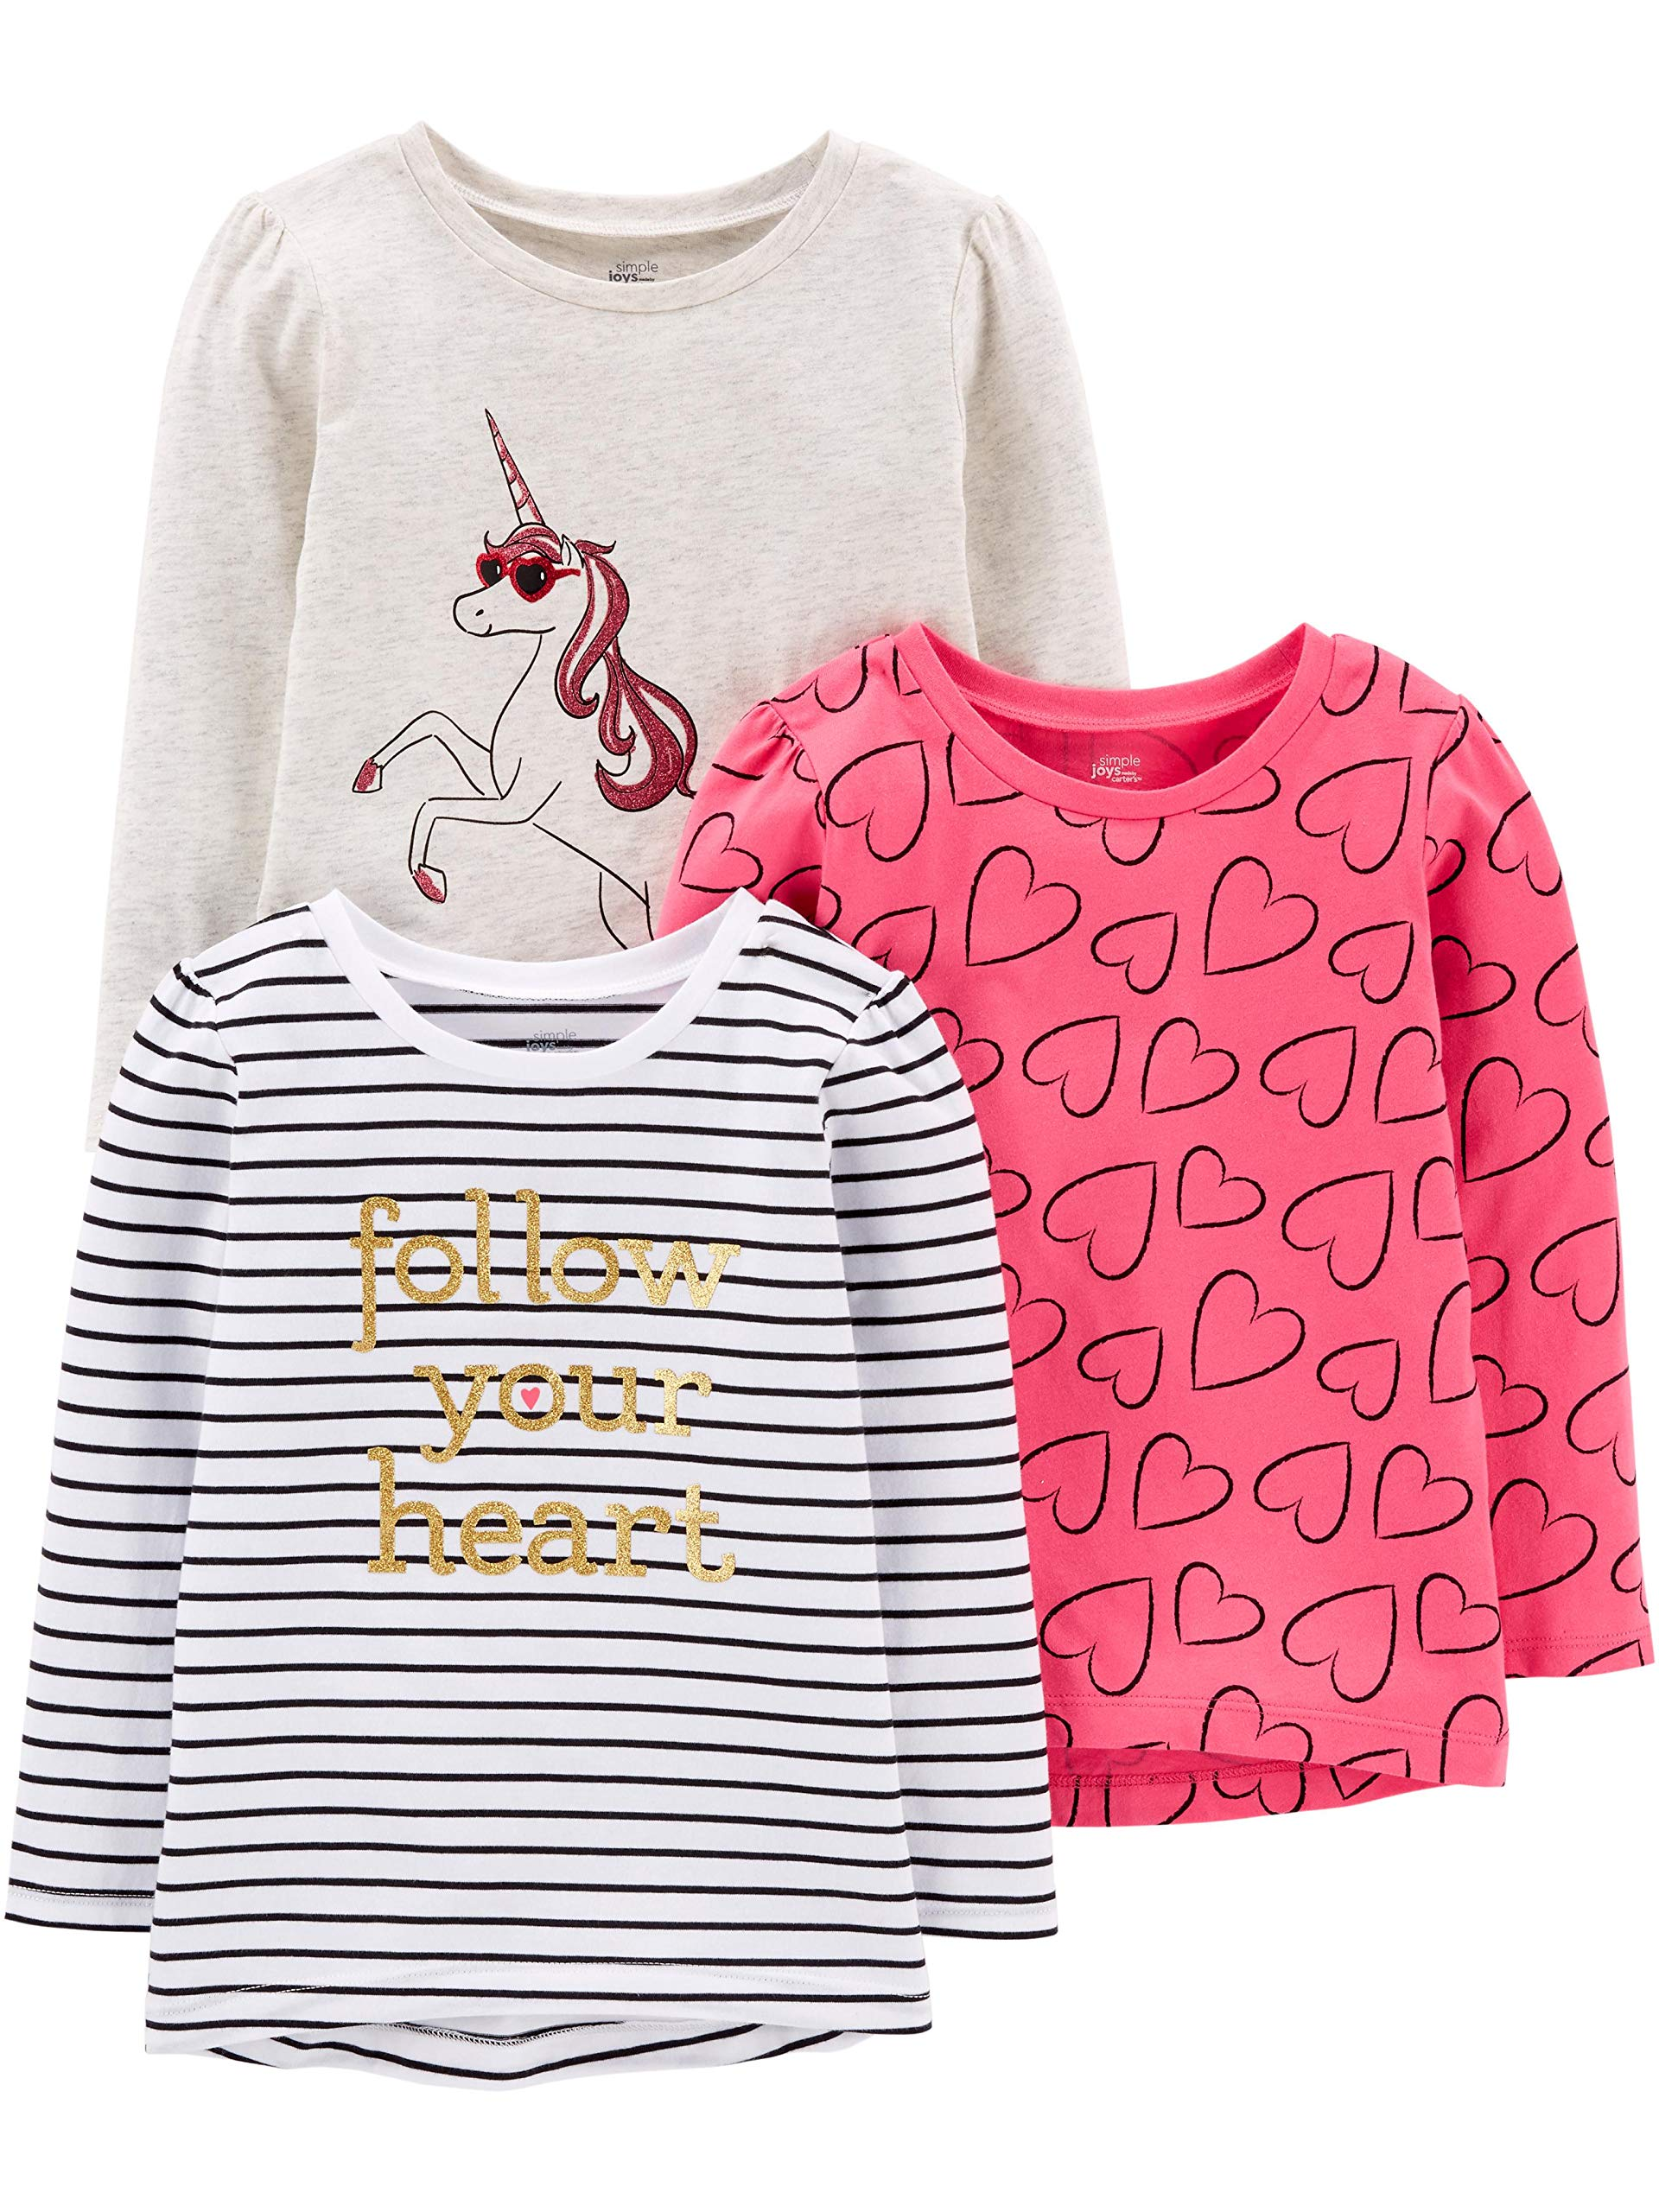 Simple Joys by Carter's Girls' Toddler 3-Pack Graphic Long-Sleeve Tees, Unicorn/Heart/Stripe, 4T by Simple Joys by Carter's